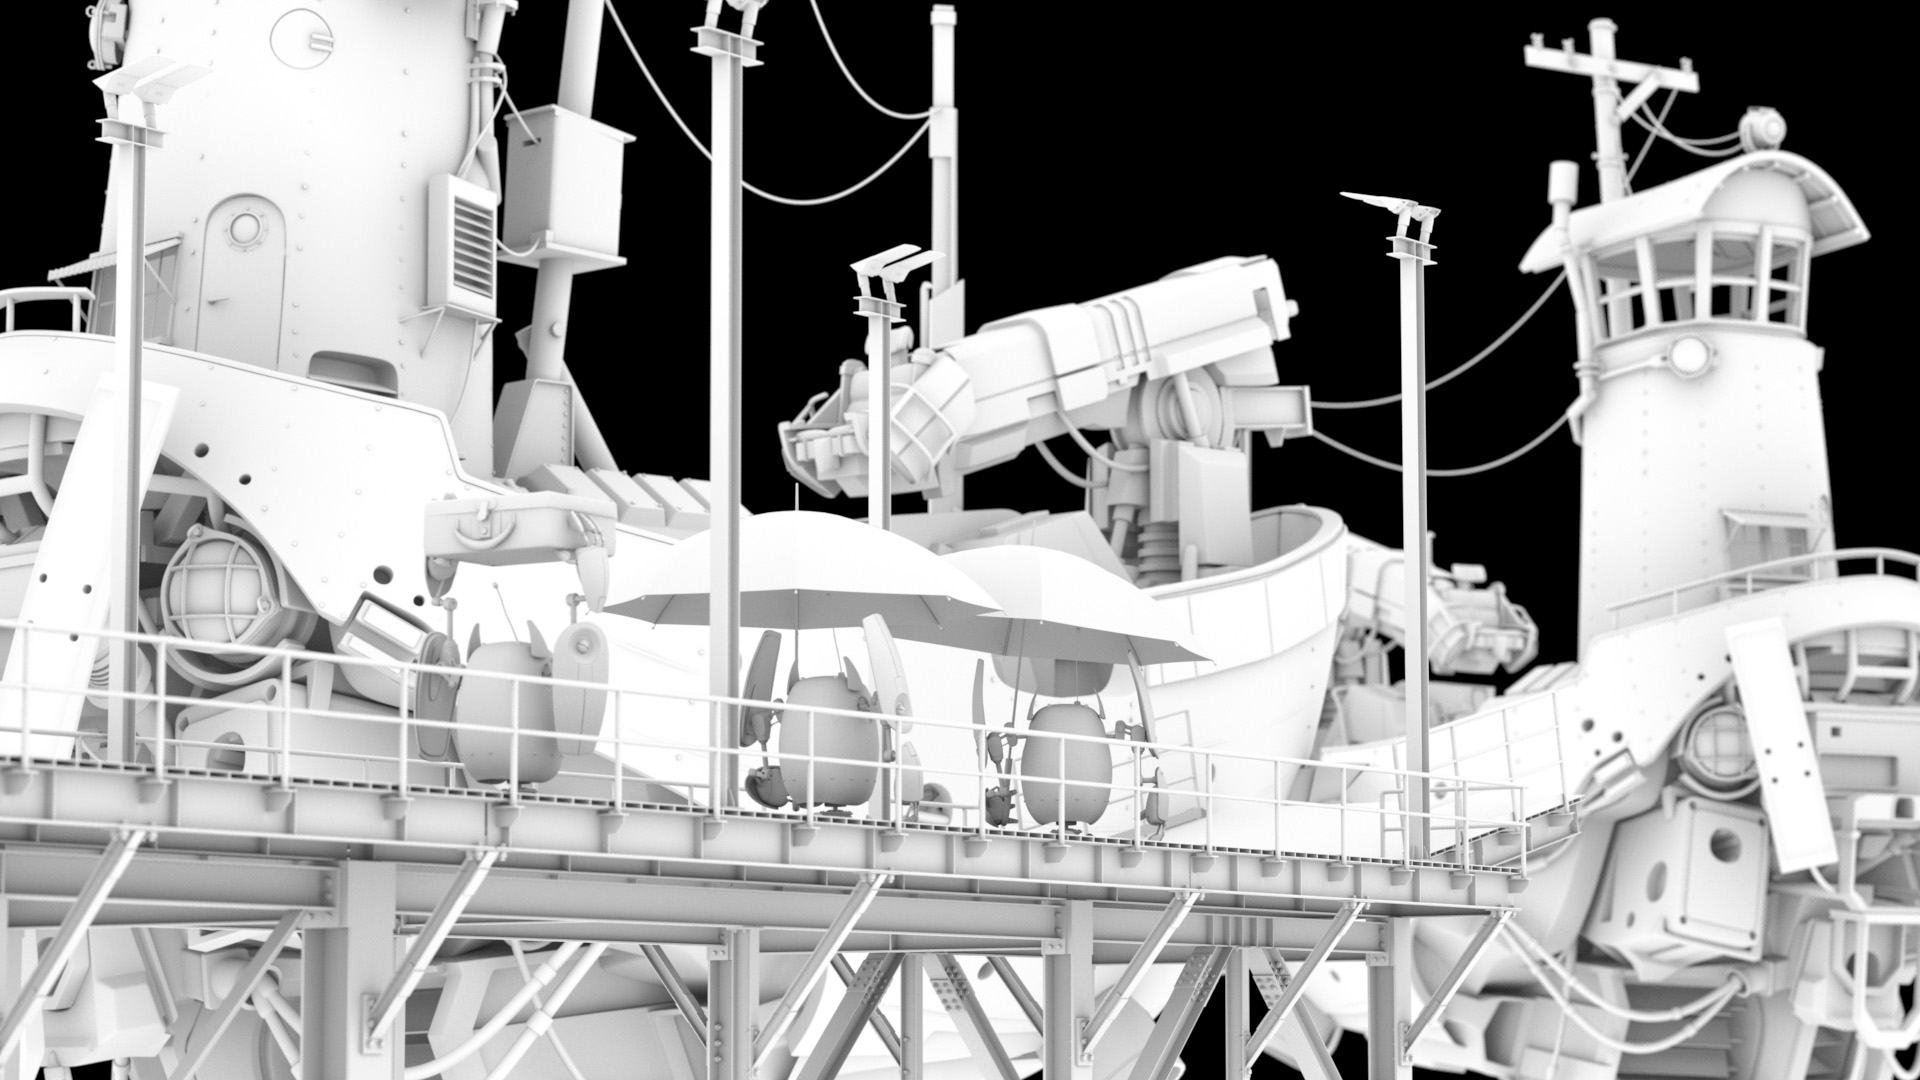 Figure 8: AO render of my layout going into shading and lighting. Check out all of the crazy detail on the dock that I modeled!